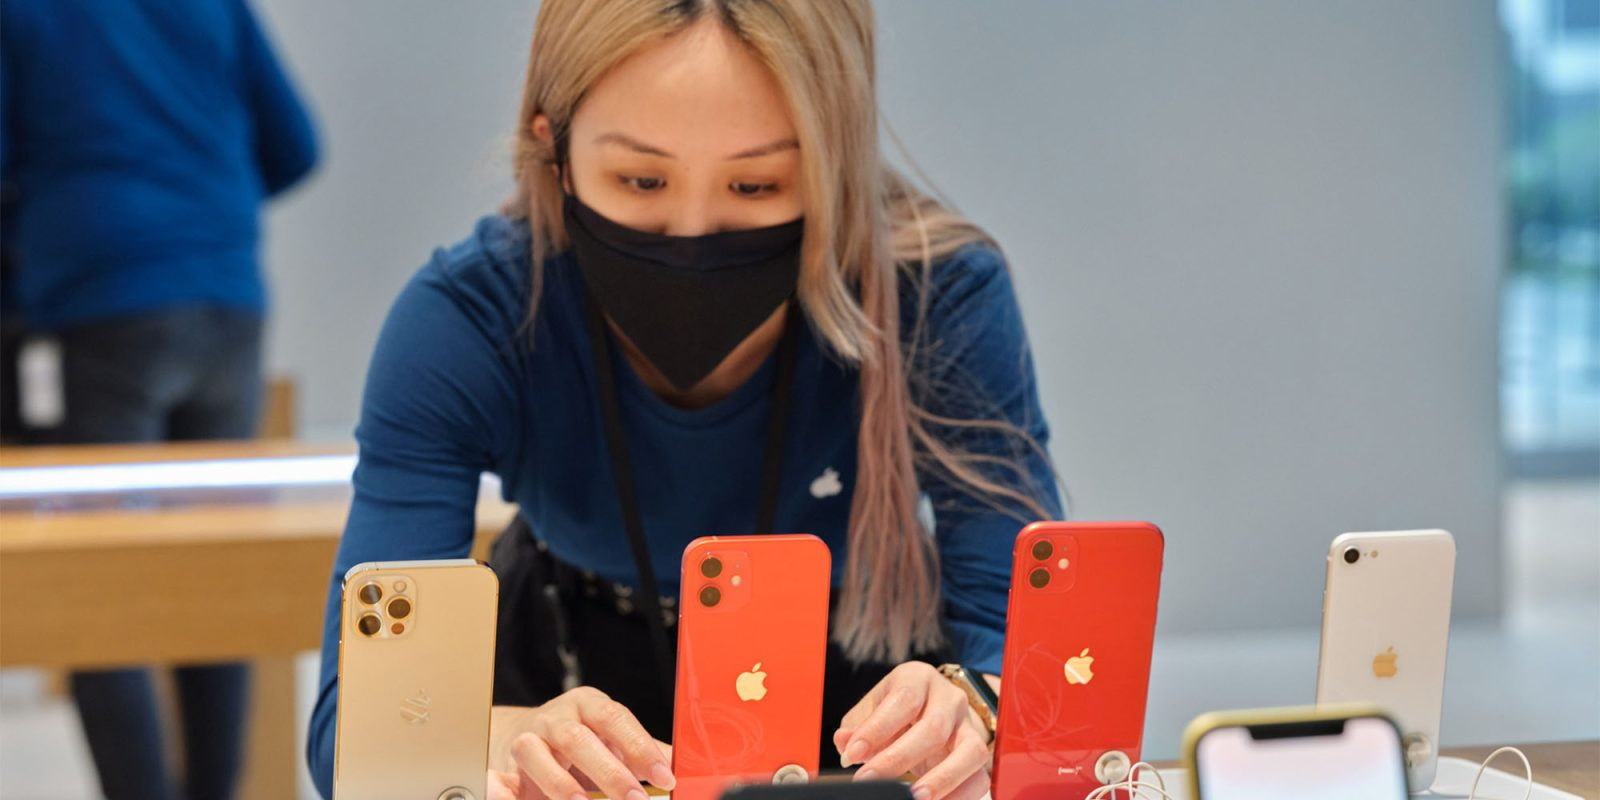 iPhone 12 component costs are $431, 26% up on the iPhone 11 – Counterpoint